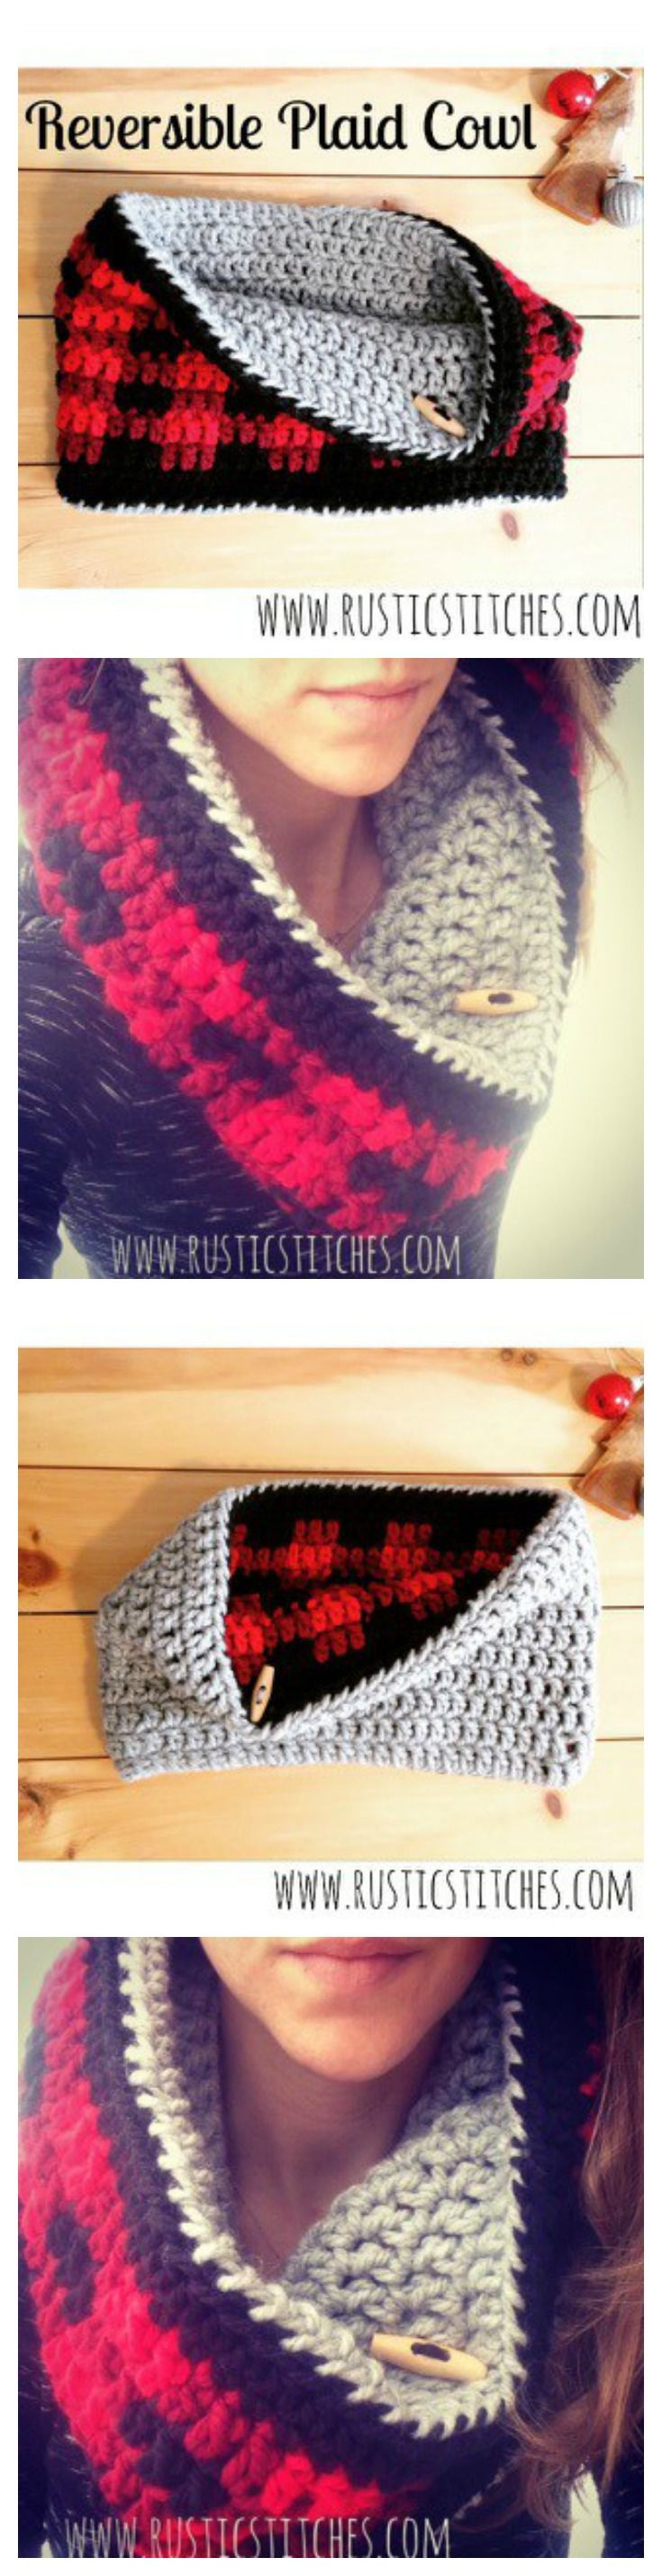 Reversible Plaid Cowl - FREE PATTERN from www.rusticstitches.com ...